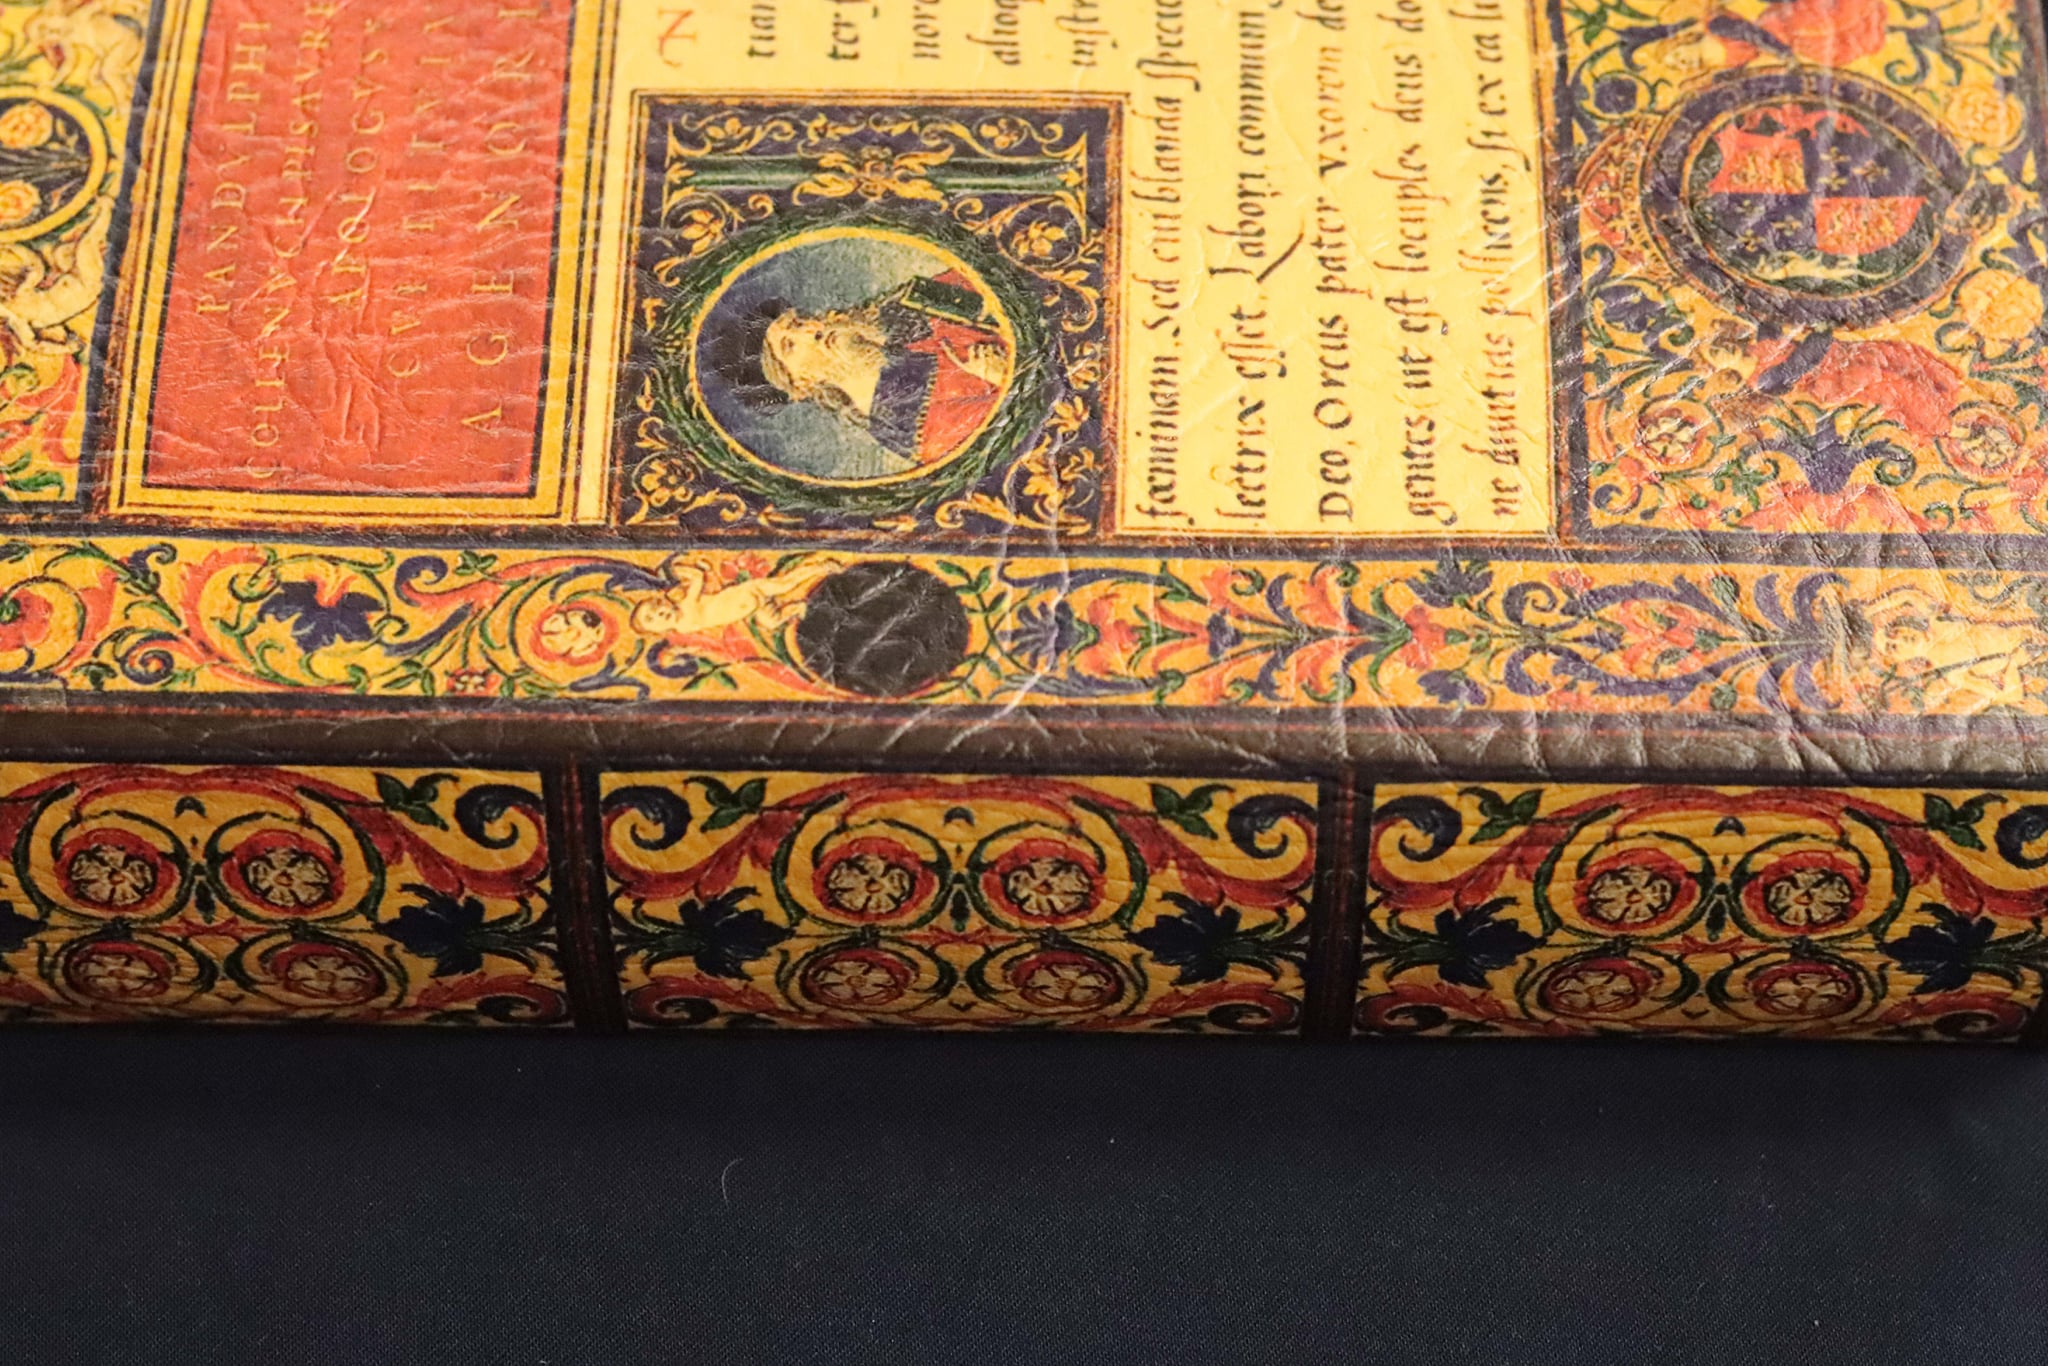 book with medeival looking images